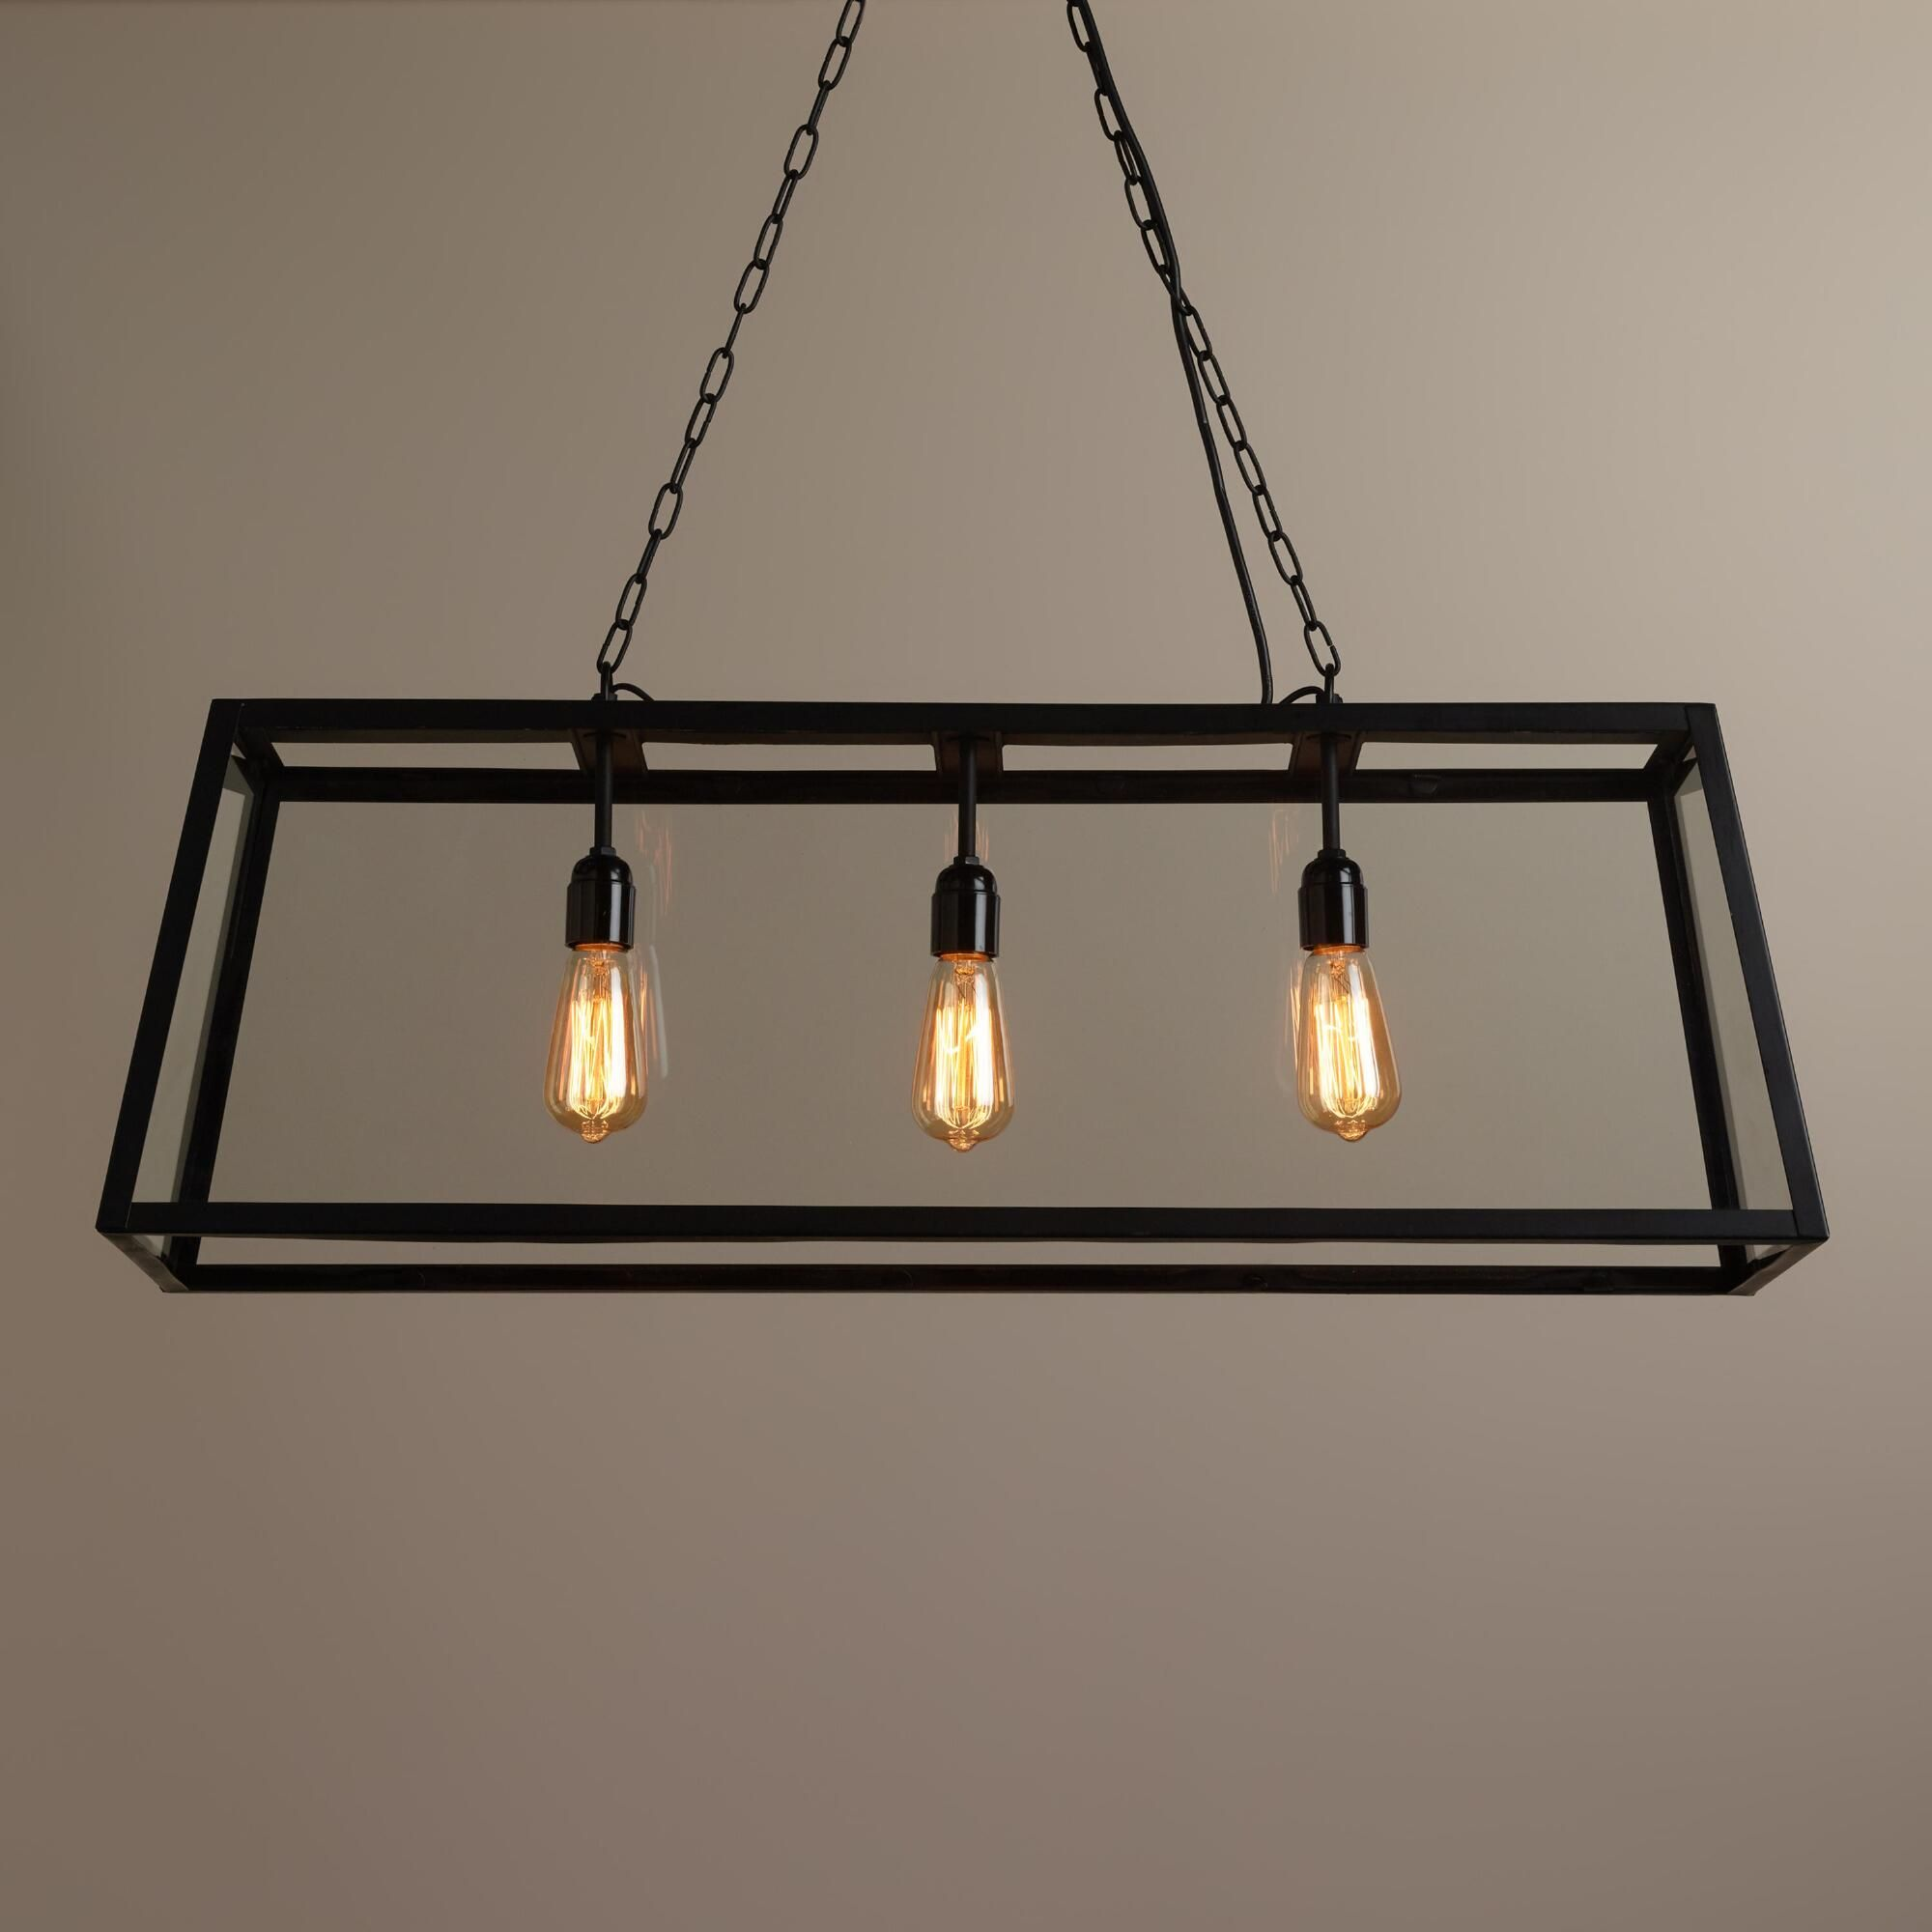 bronze lighting light rectangle quentin fixture interior product hanging buckeye